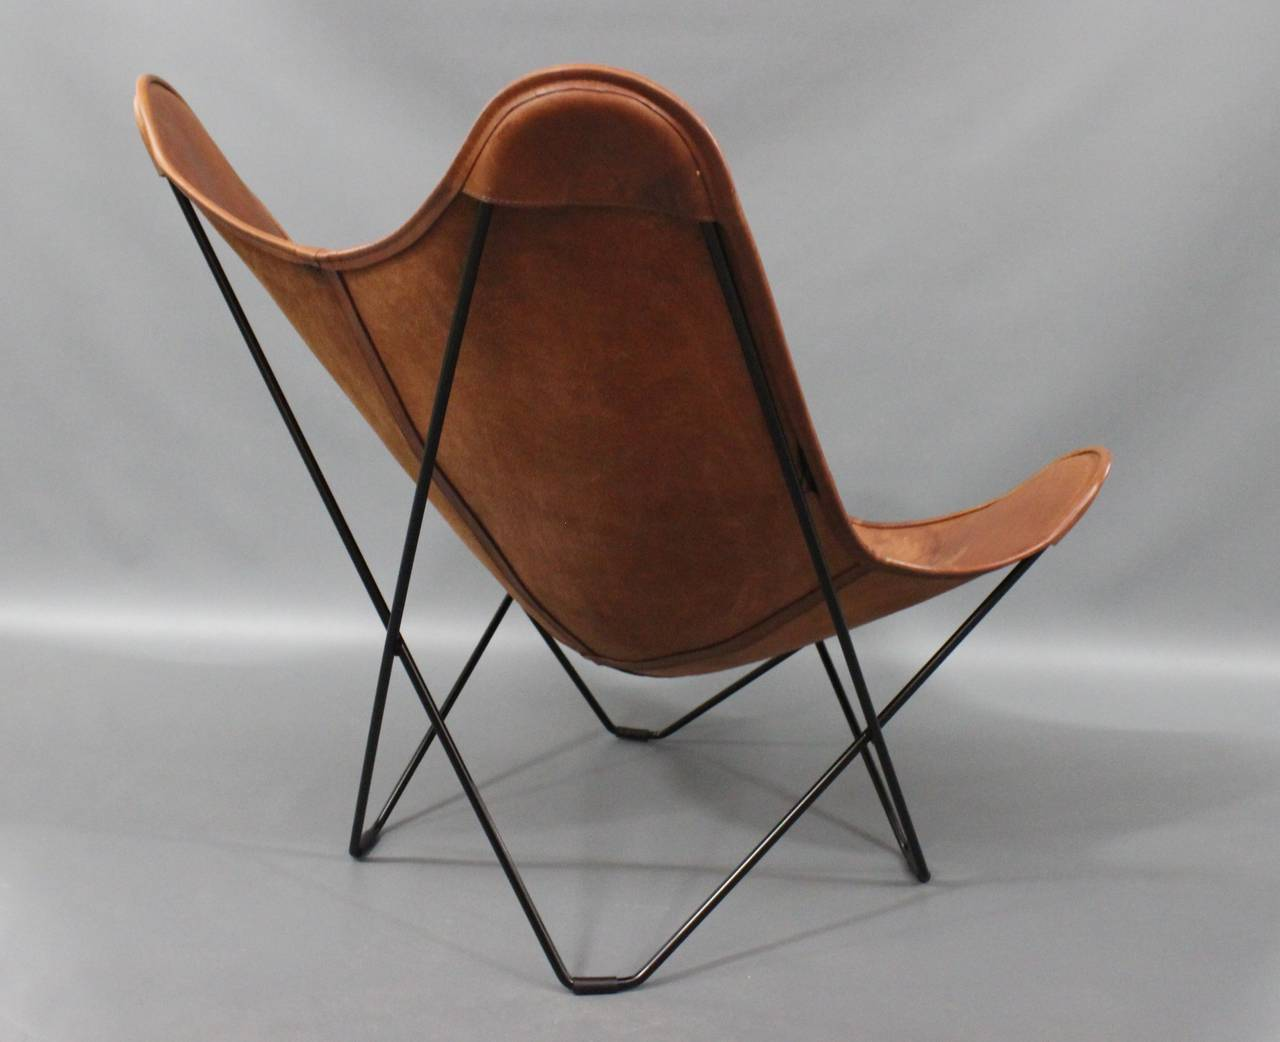 Brown Leather Butterfly Chair Leather Quotbutterfly Quot Chair Designed By Jorge Ferrari Hardoy